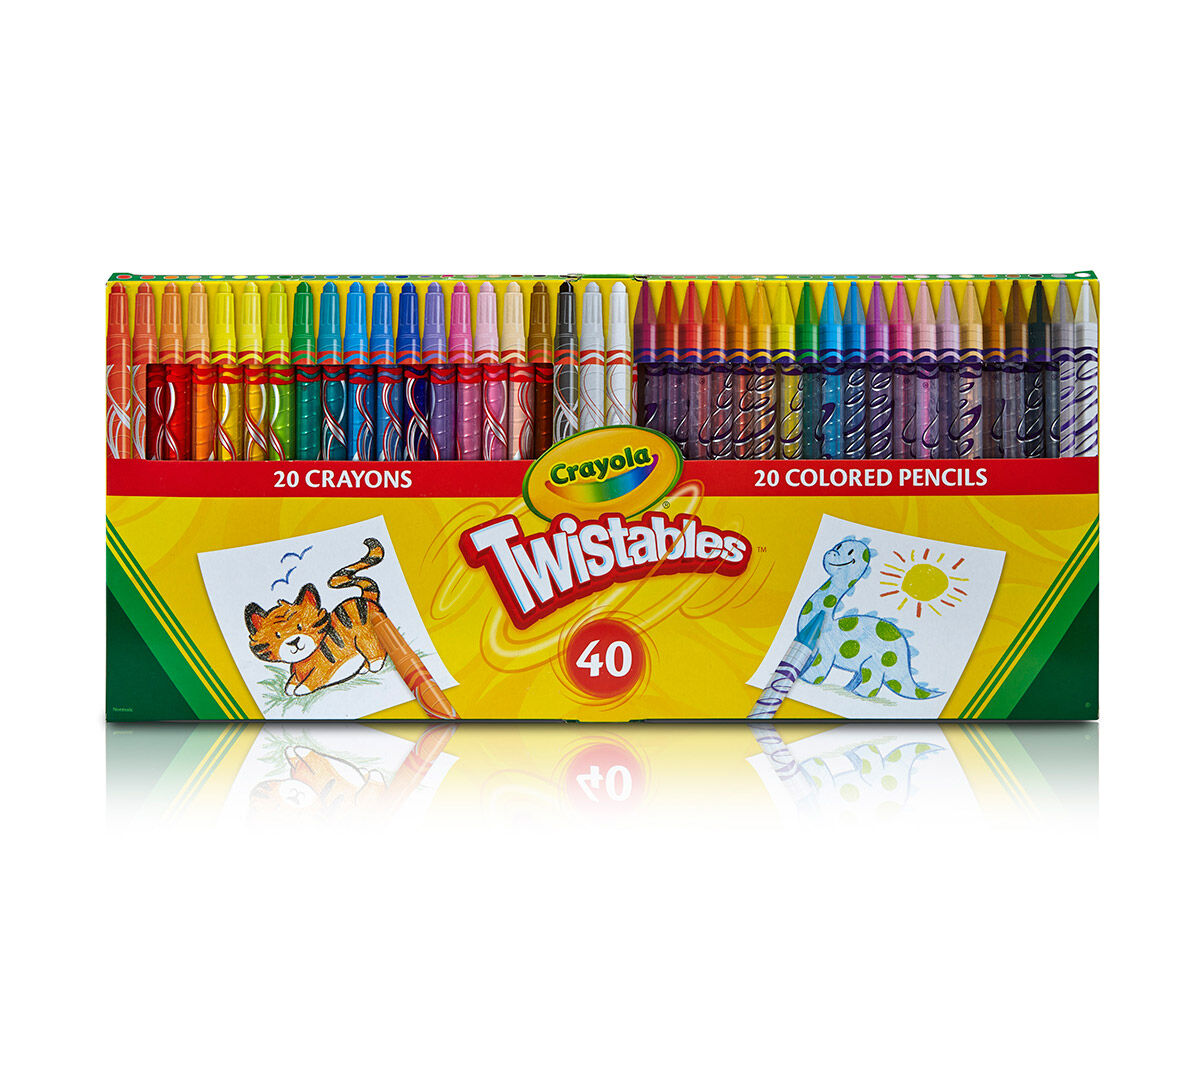 40 Count Twistables Colored Pencils and Crayons Combo Pack